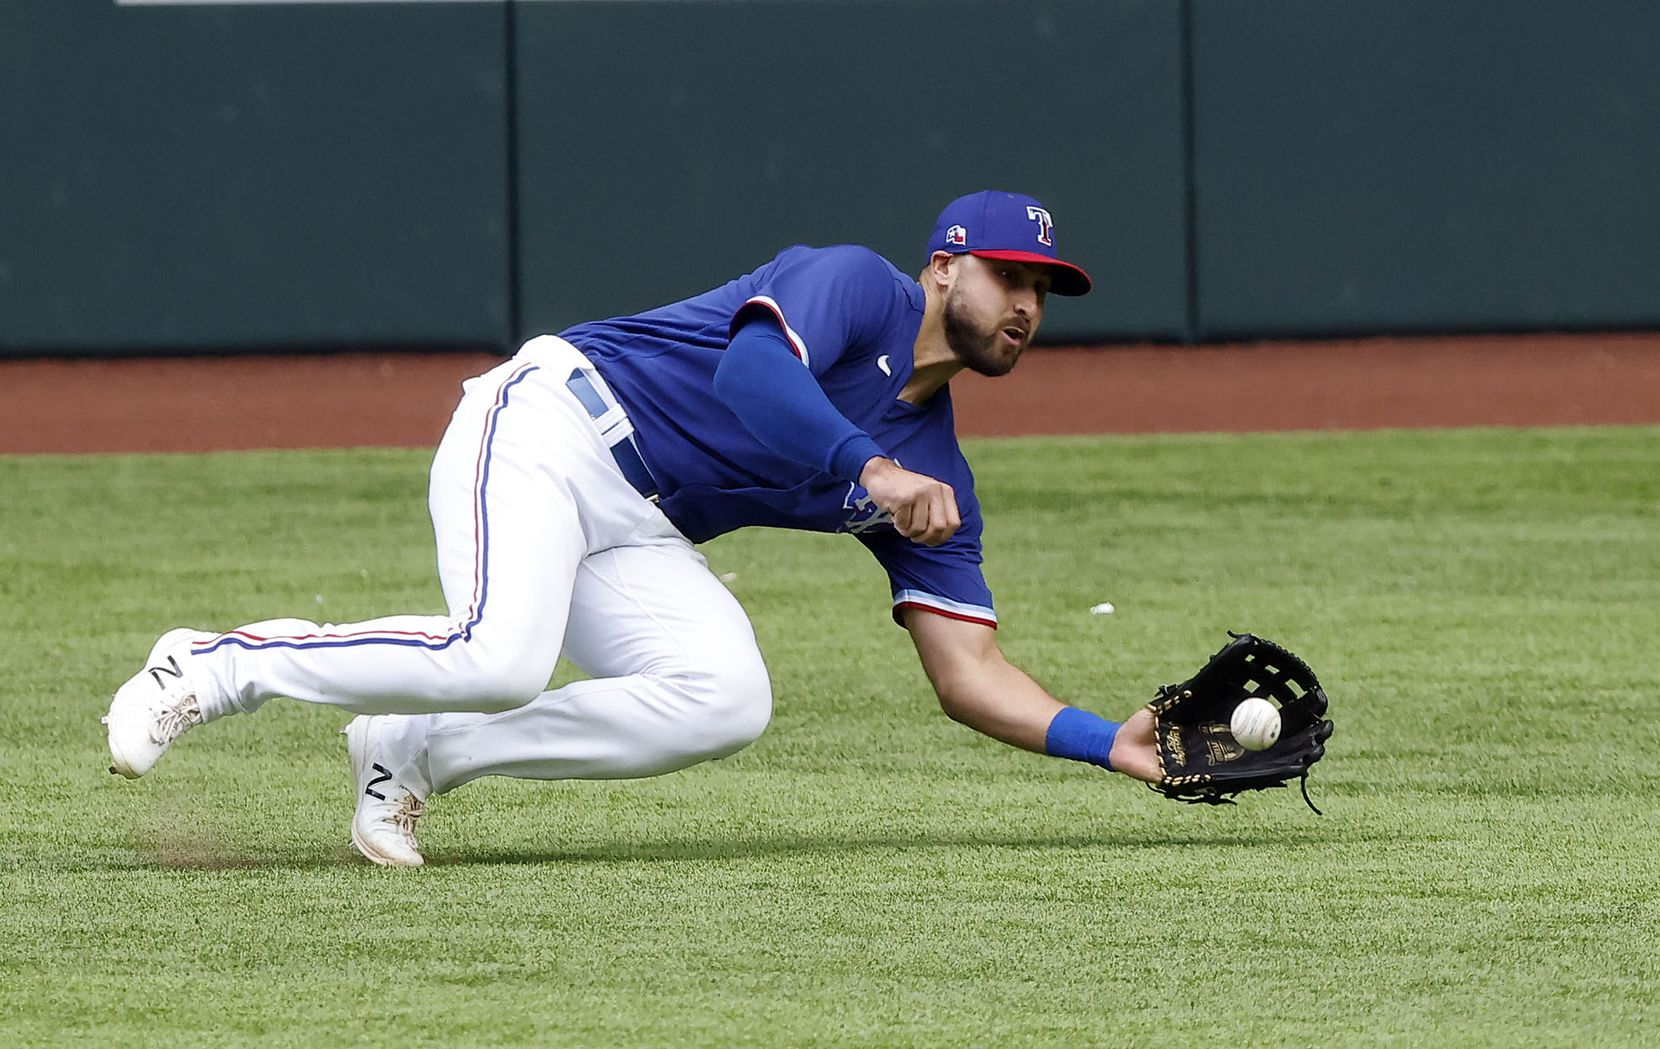 Texas Rangers center fielder Joey Gallo (13) makes a highlight catch making the fly out of Milwaukee Brewers batter Jackie Bradley, Jr. in the third inning at Globe Life Field in Arlington, Texas. The teams were playing in an exhibition game, Tuesday, March 30, 2021. (Tom Fox/The Dallas Morning News)